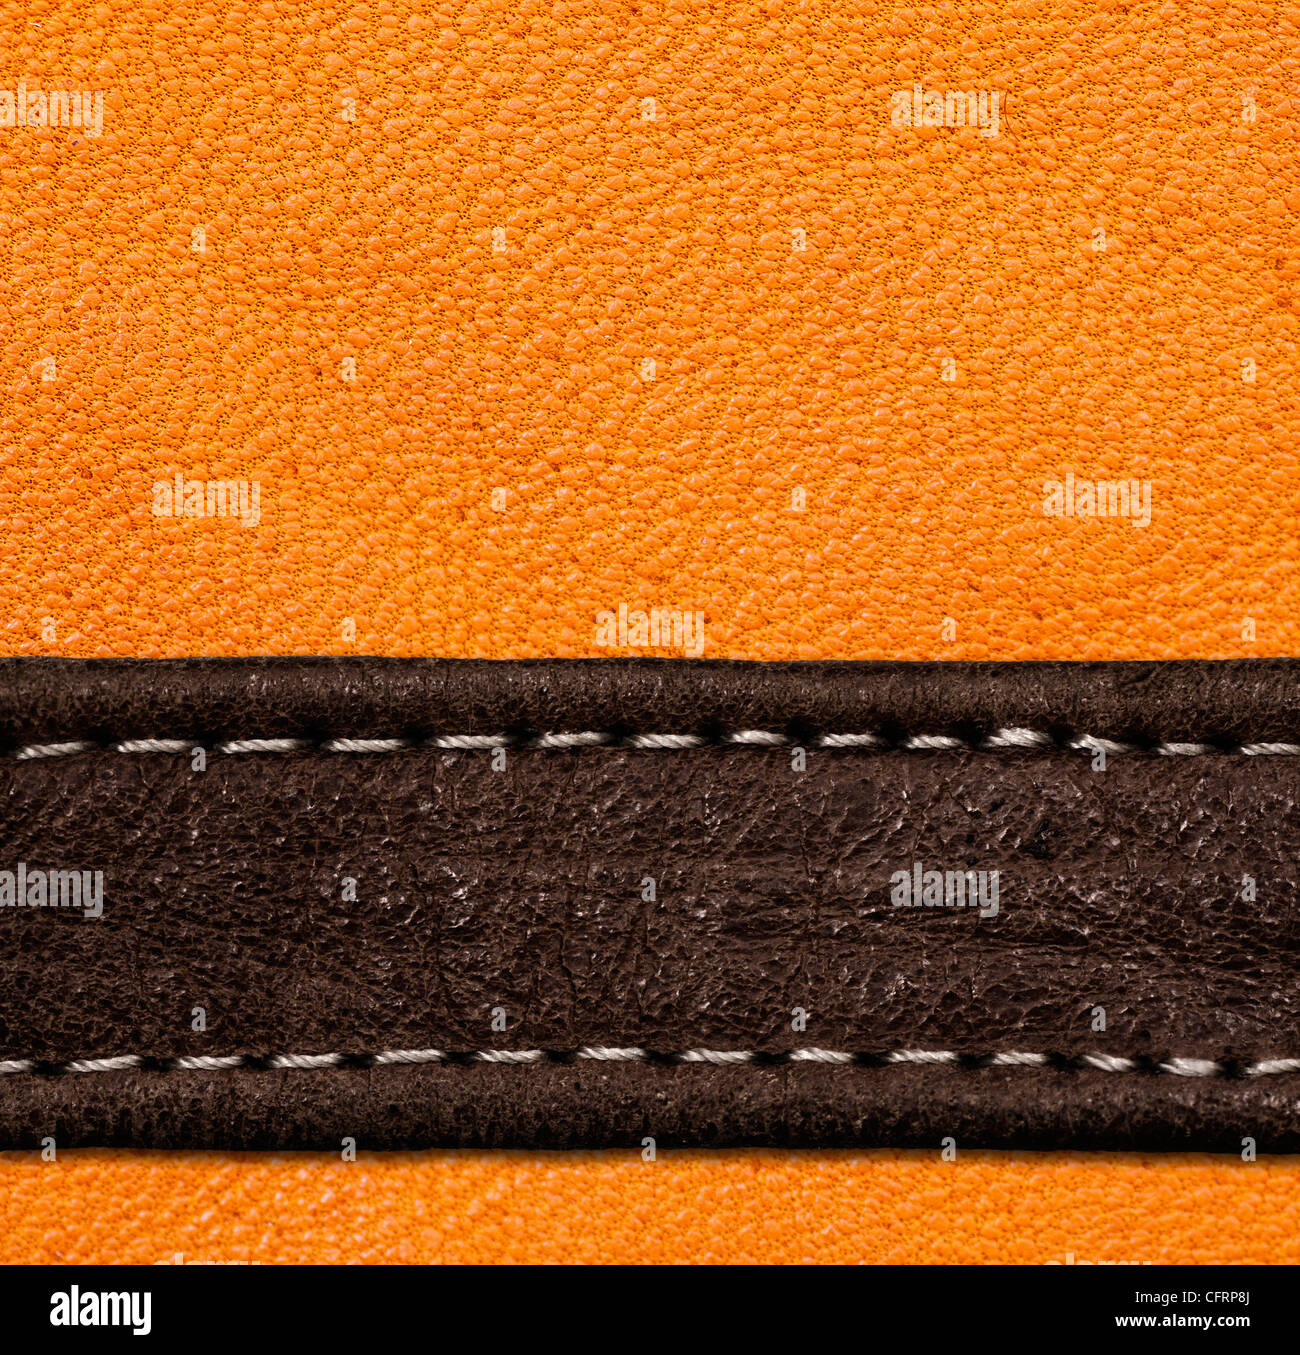 A brown and black leather texture. high resolution. - Stock Image